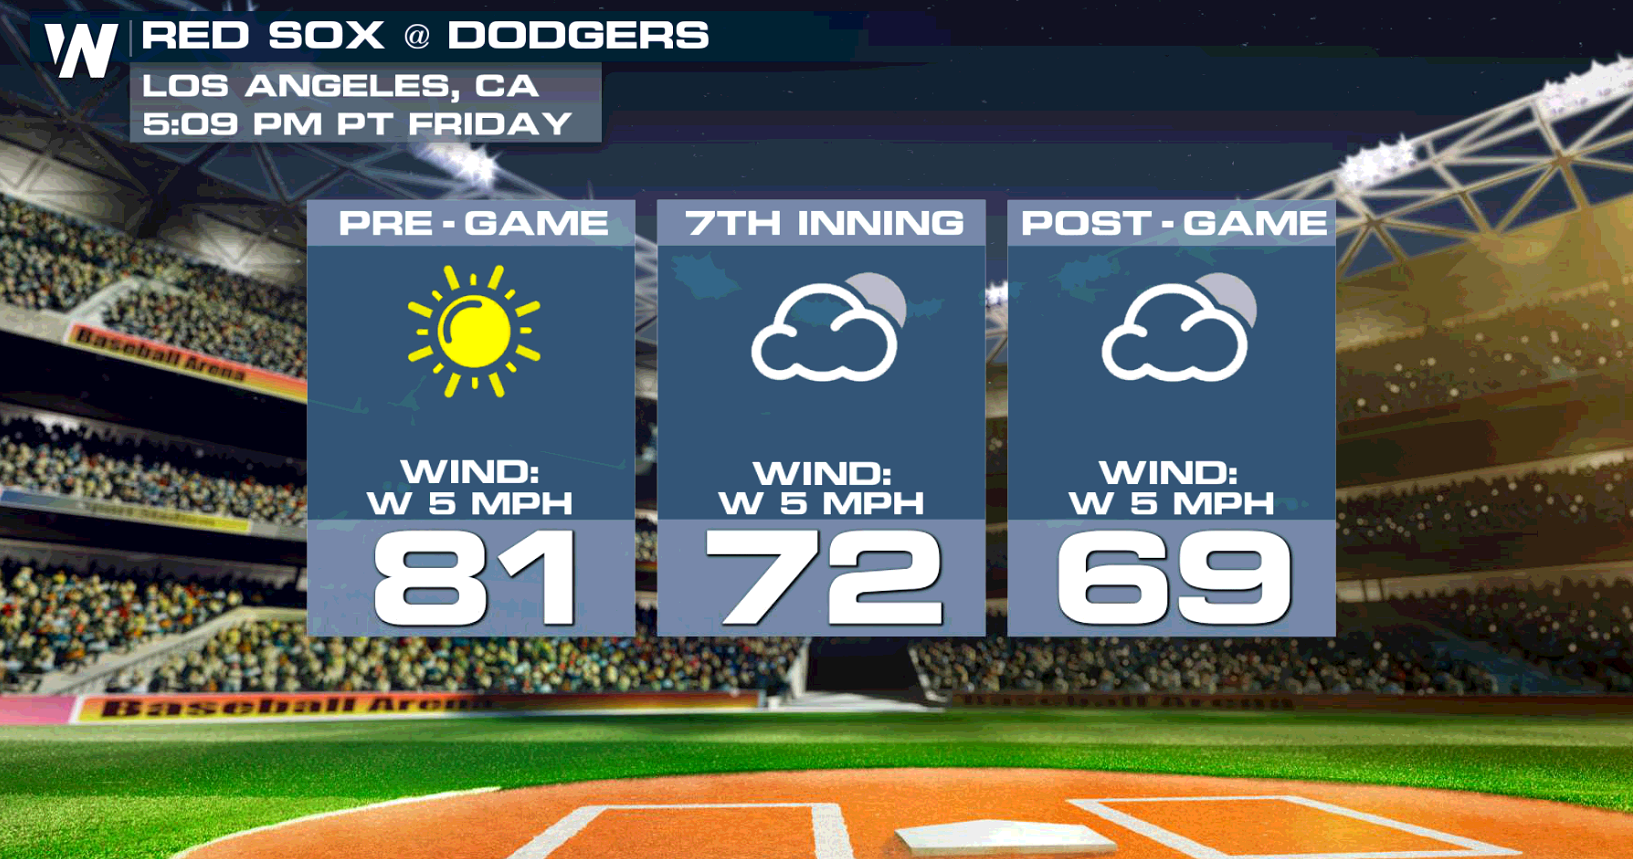 Warm and Dry for Game Three of the World Series in Los Angeles